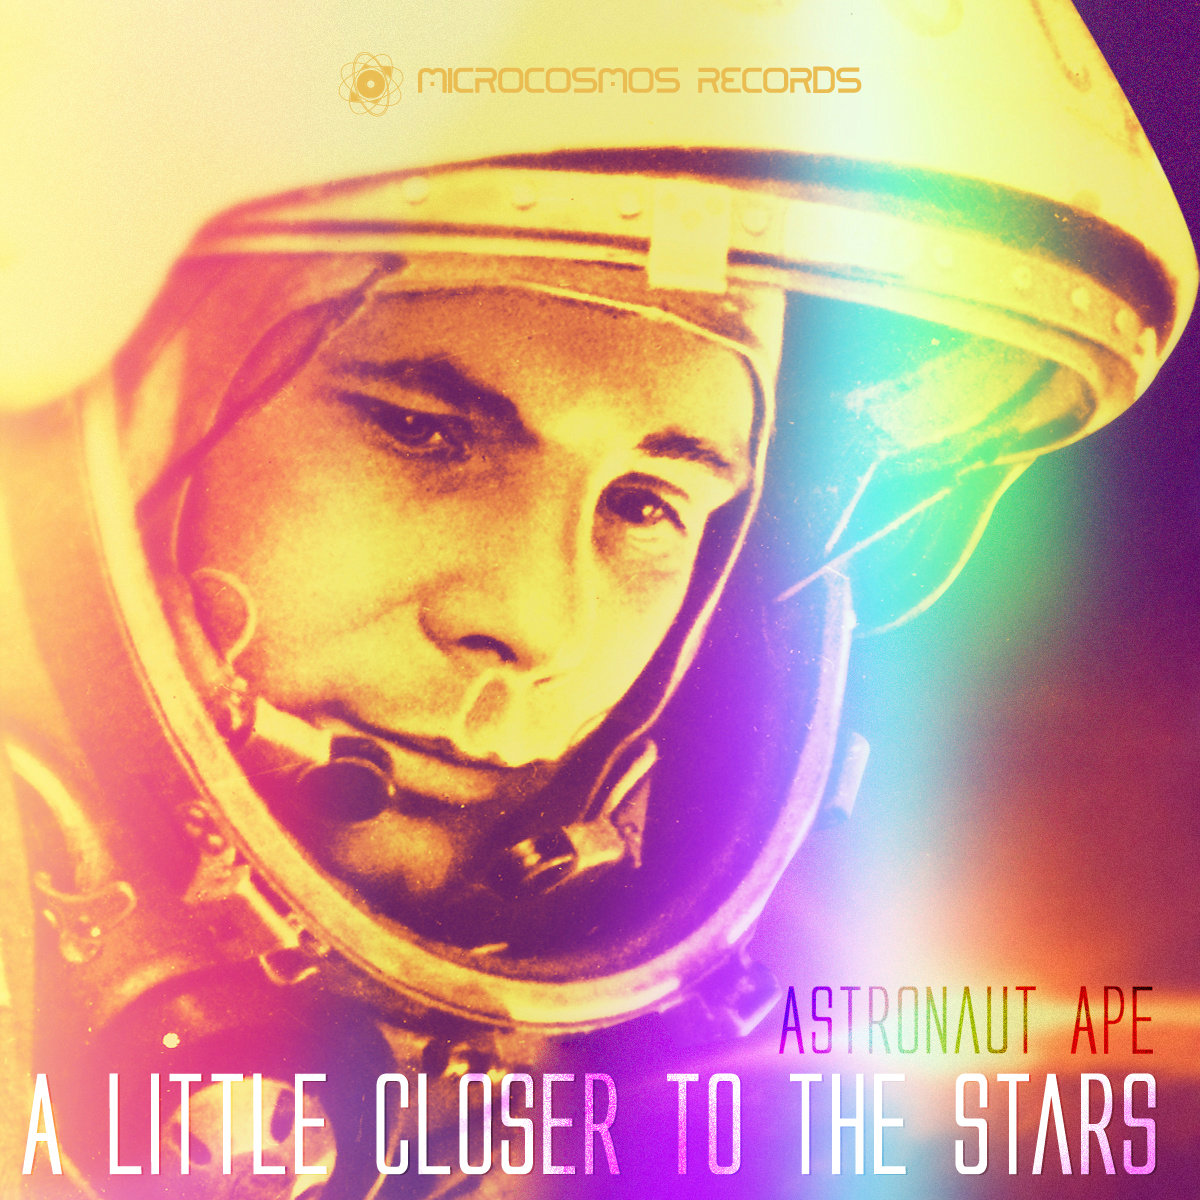 Astronaut Ape - A Little Closer To The Stars @ 'A Little Closer To The Stars' album (ambient, chill-out)